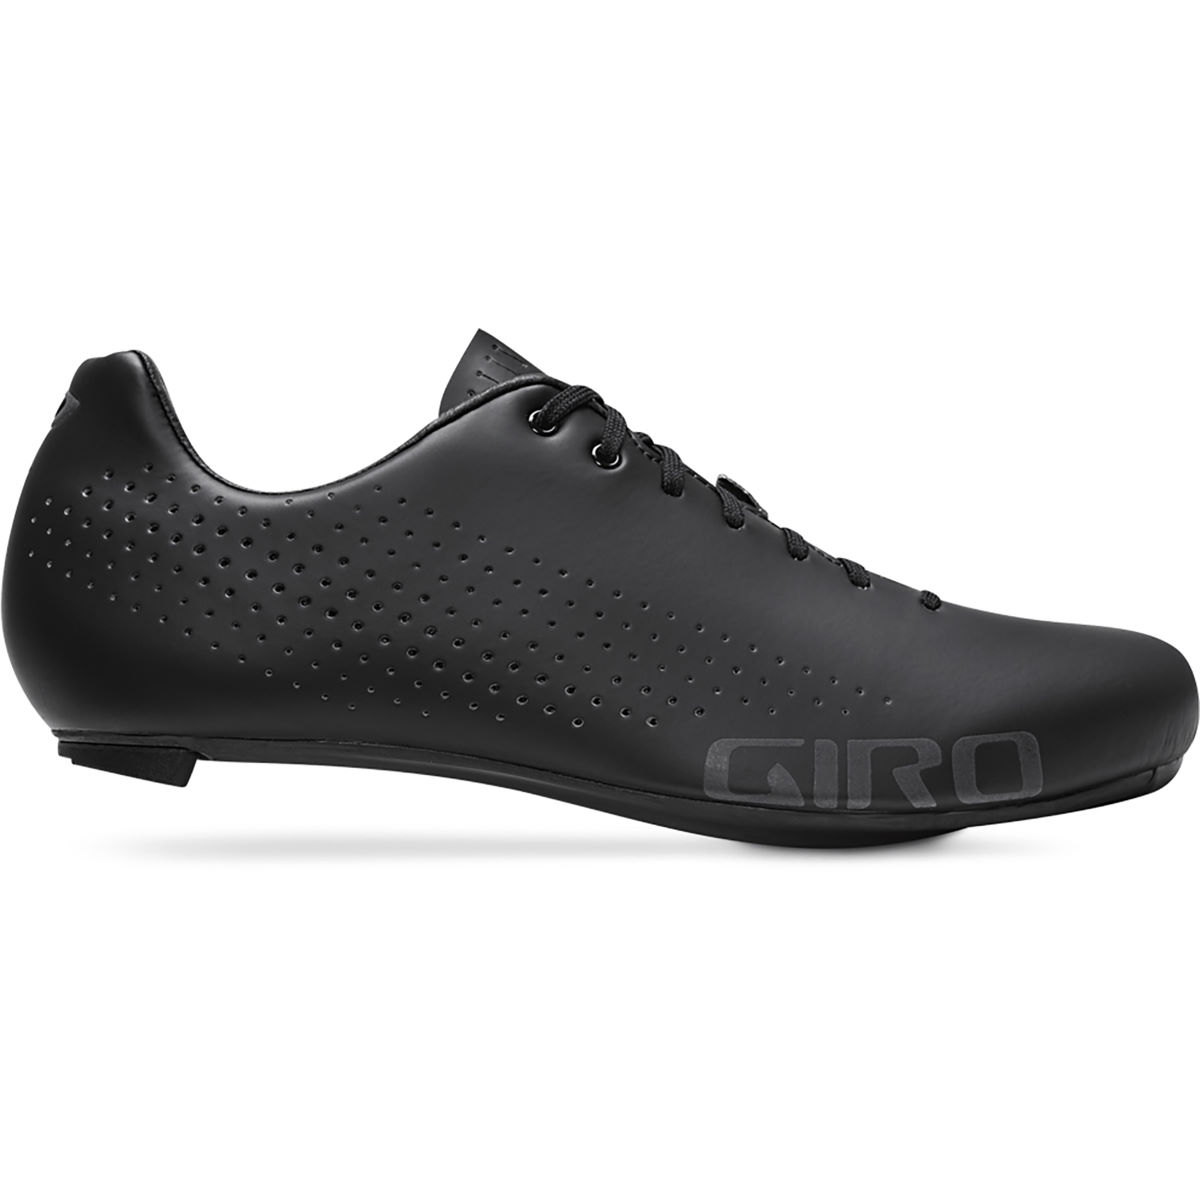 Giro Giro Empire HV Road Shoes (2020)   Cycling Shoes